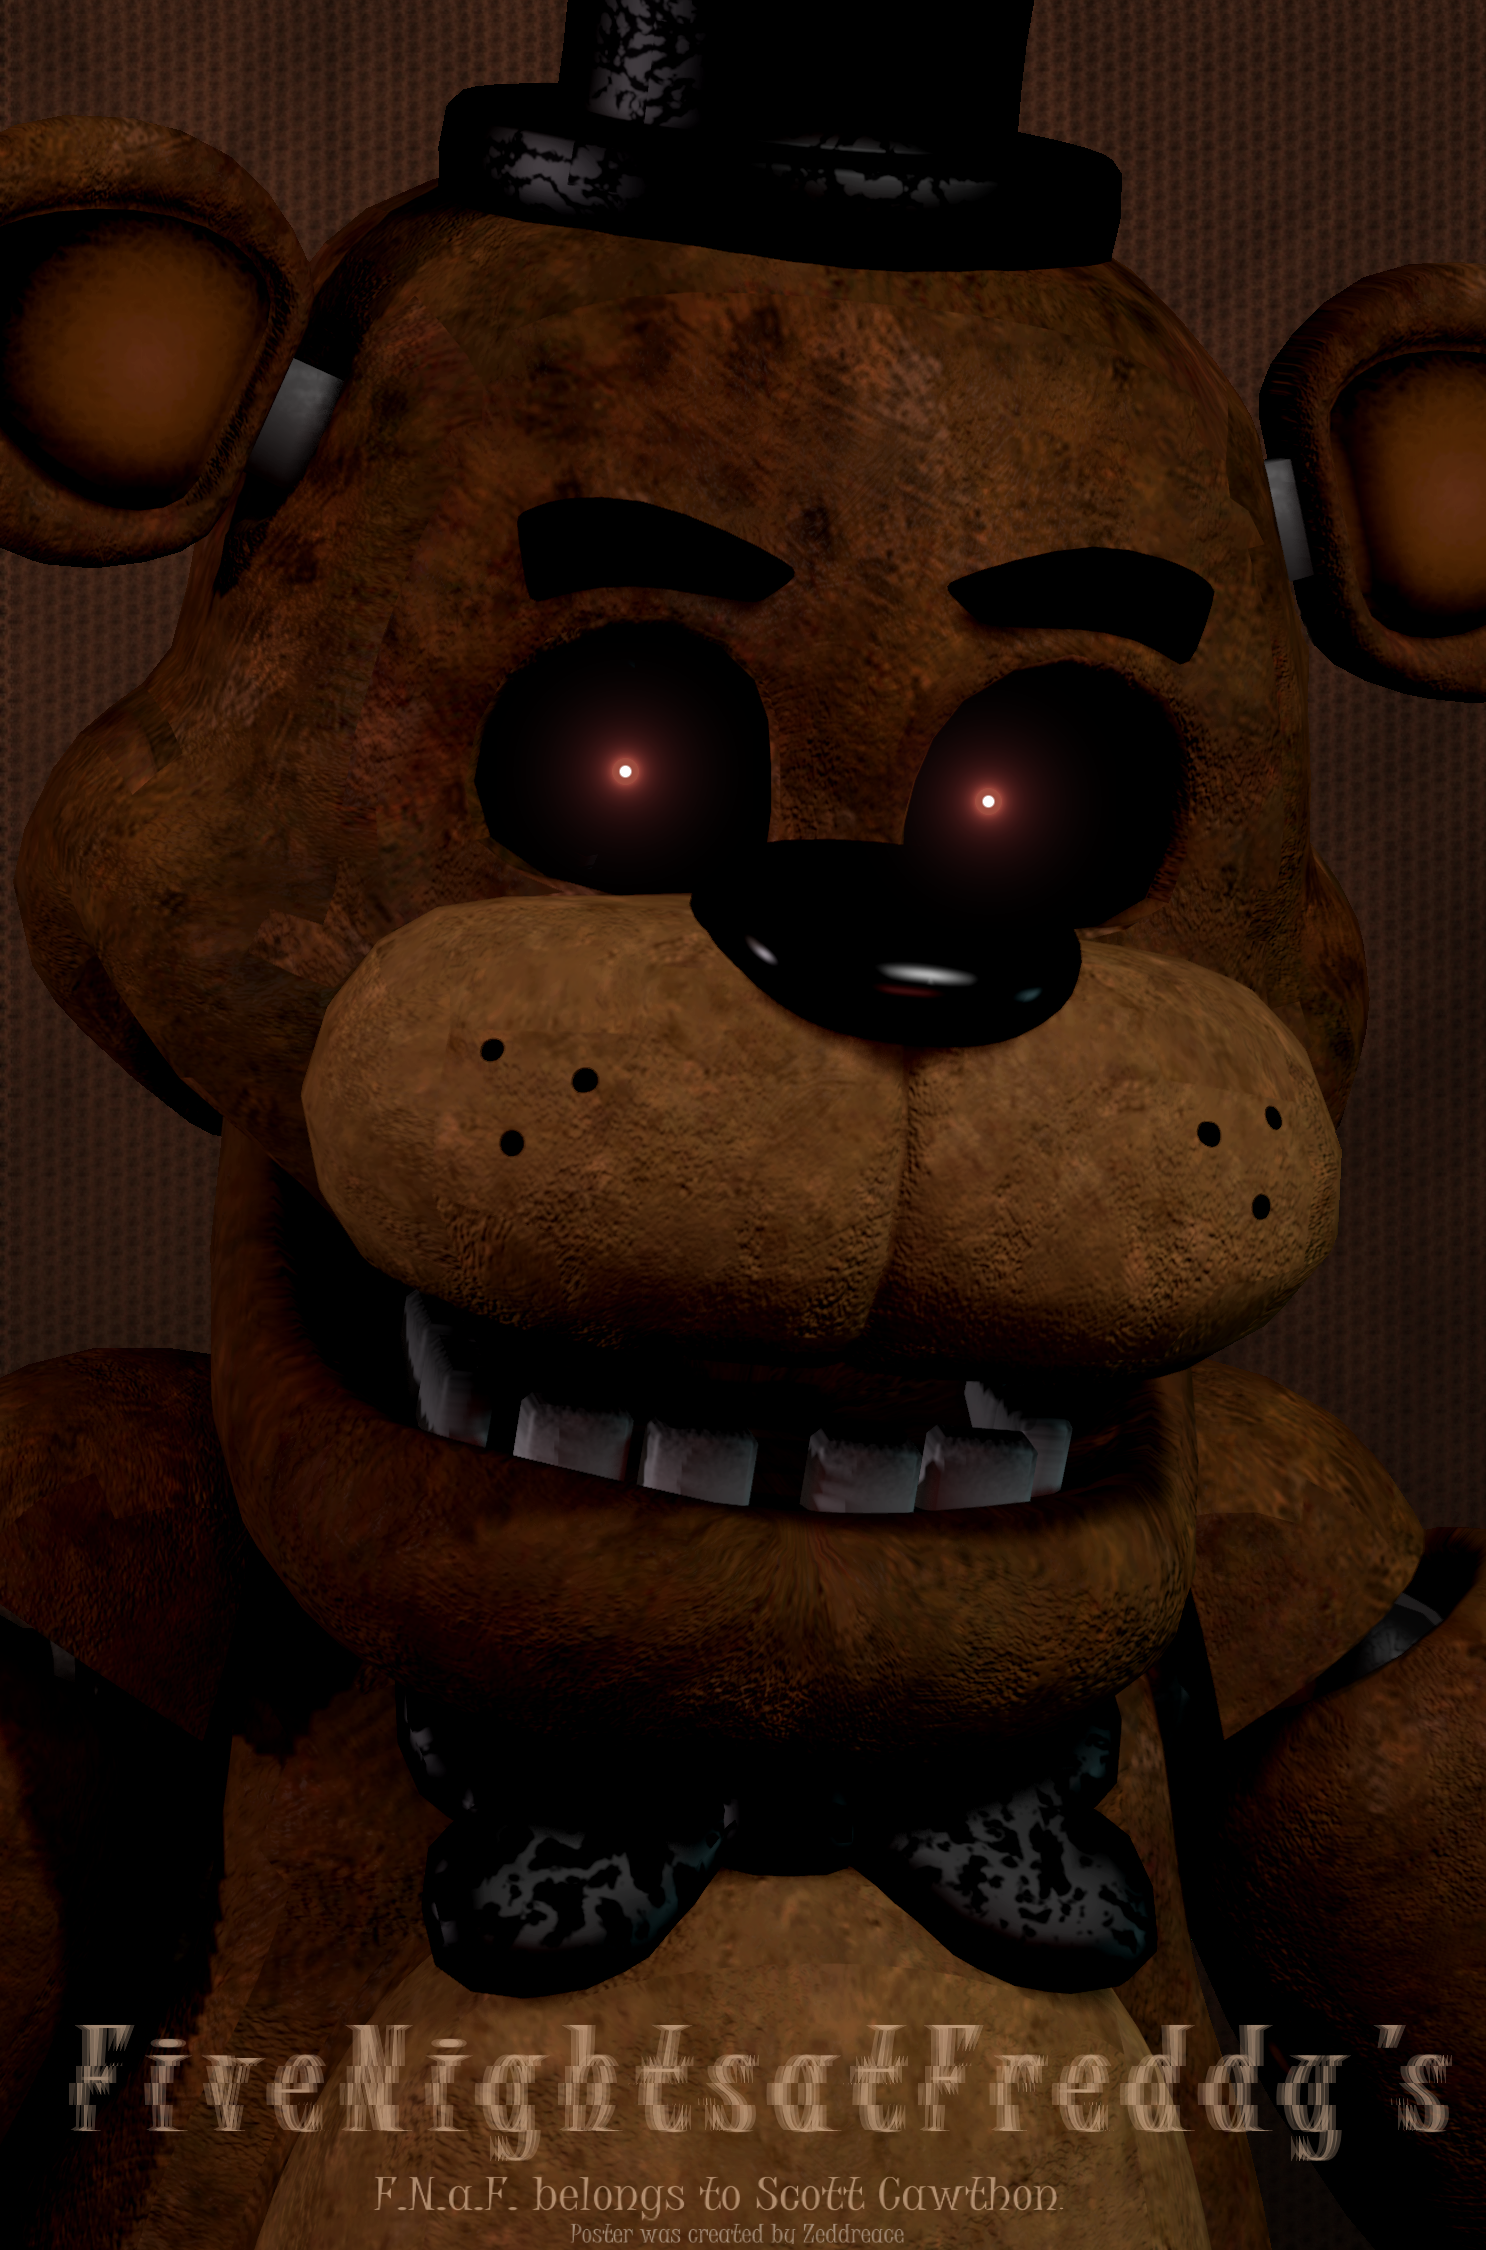 sfm five nights at freddy s poster hd によって zeddreace dawbjfl 1